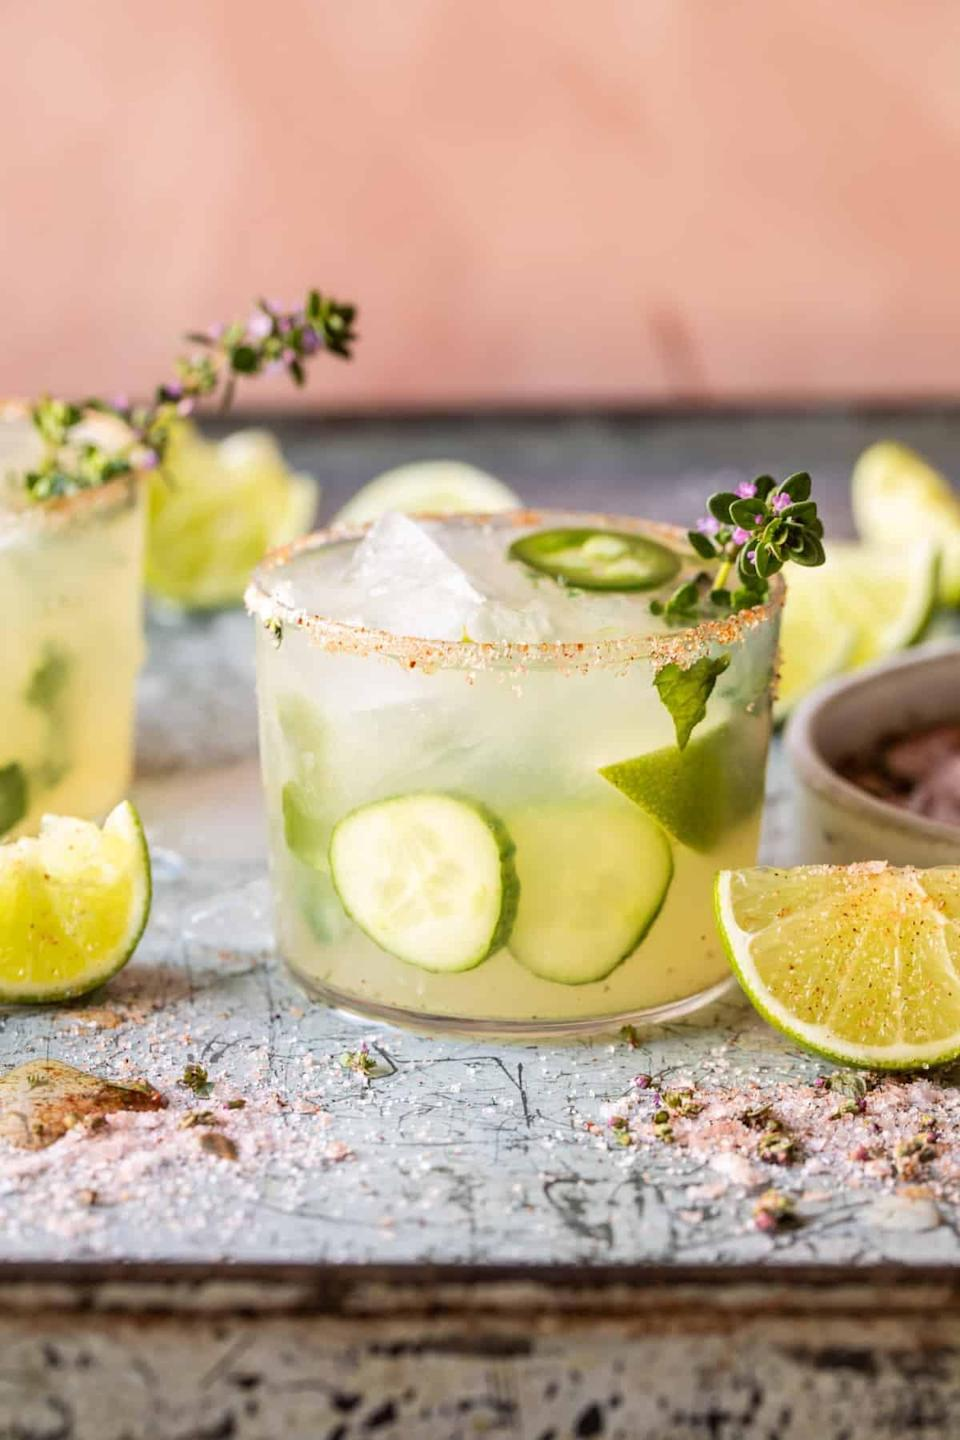 """<p>Imagine: tequila mixed with fresh lime juice, cucumbers, spicy jalapeños, and topped off with ginger beer. It has a fizzy twist and spicy kick, providing your taste buds with everything they could dream of. Not to mention, it also boasts one of Mardi Gras fun colors!</p> <p><strong>Get the recipe</strong>: <a href=""""https://www.halfbakedharvest.com/spicy-cucumber-margarita/"""" class=""""link rapid-noclick-resp"""" rel=""""nofollow noopener"""" target=""""_blank"""" data-ylk=""""slk:spicy cucumber margarita"""">spicy cucumber margarita</a></p>"""